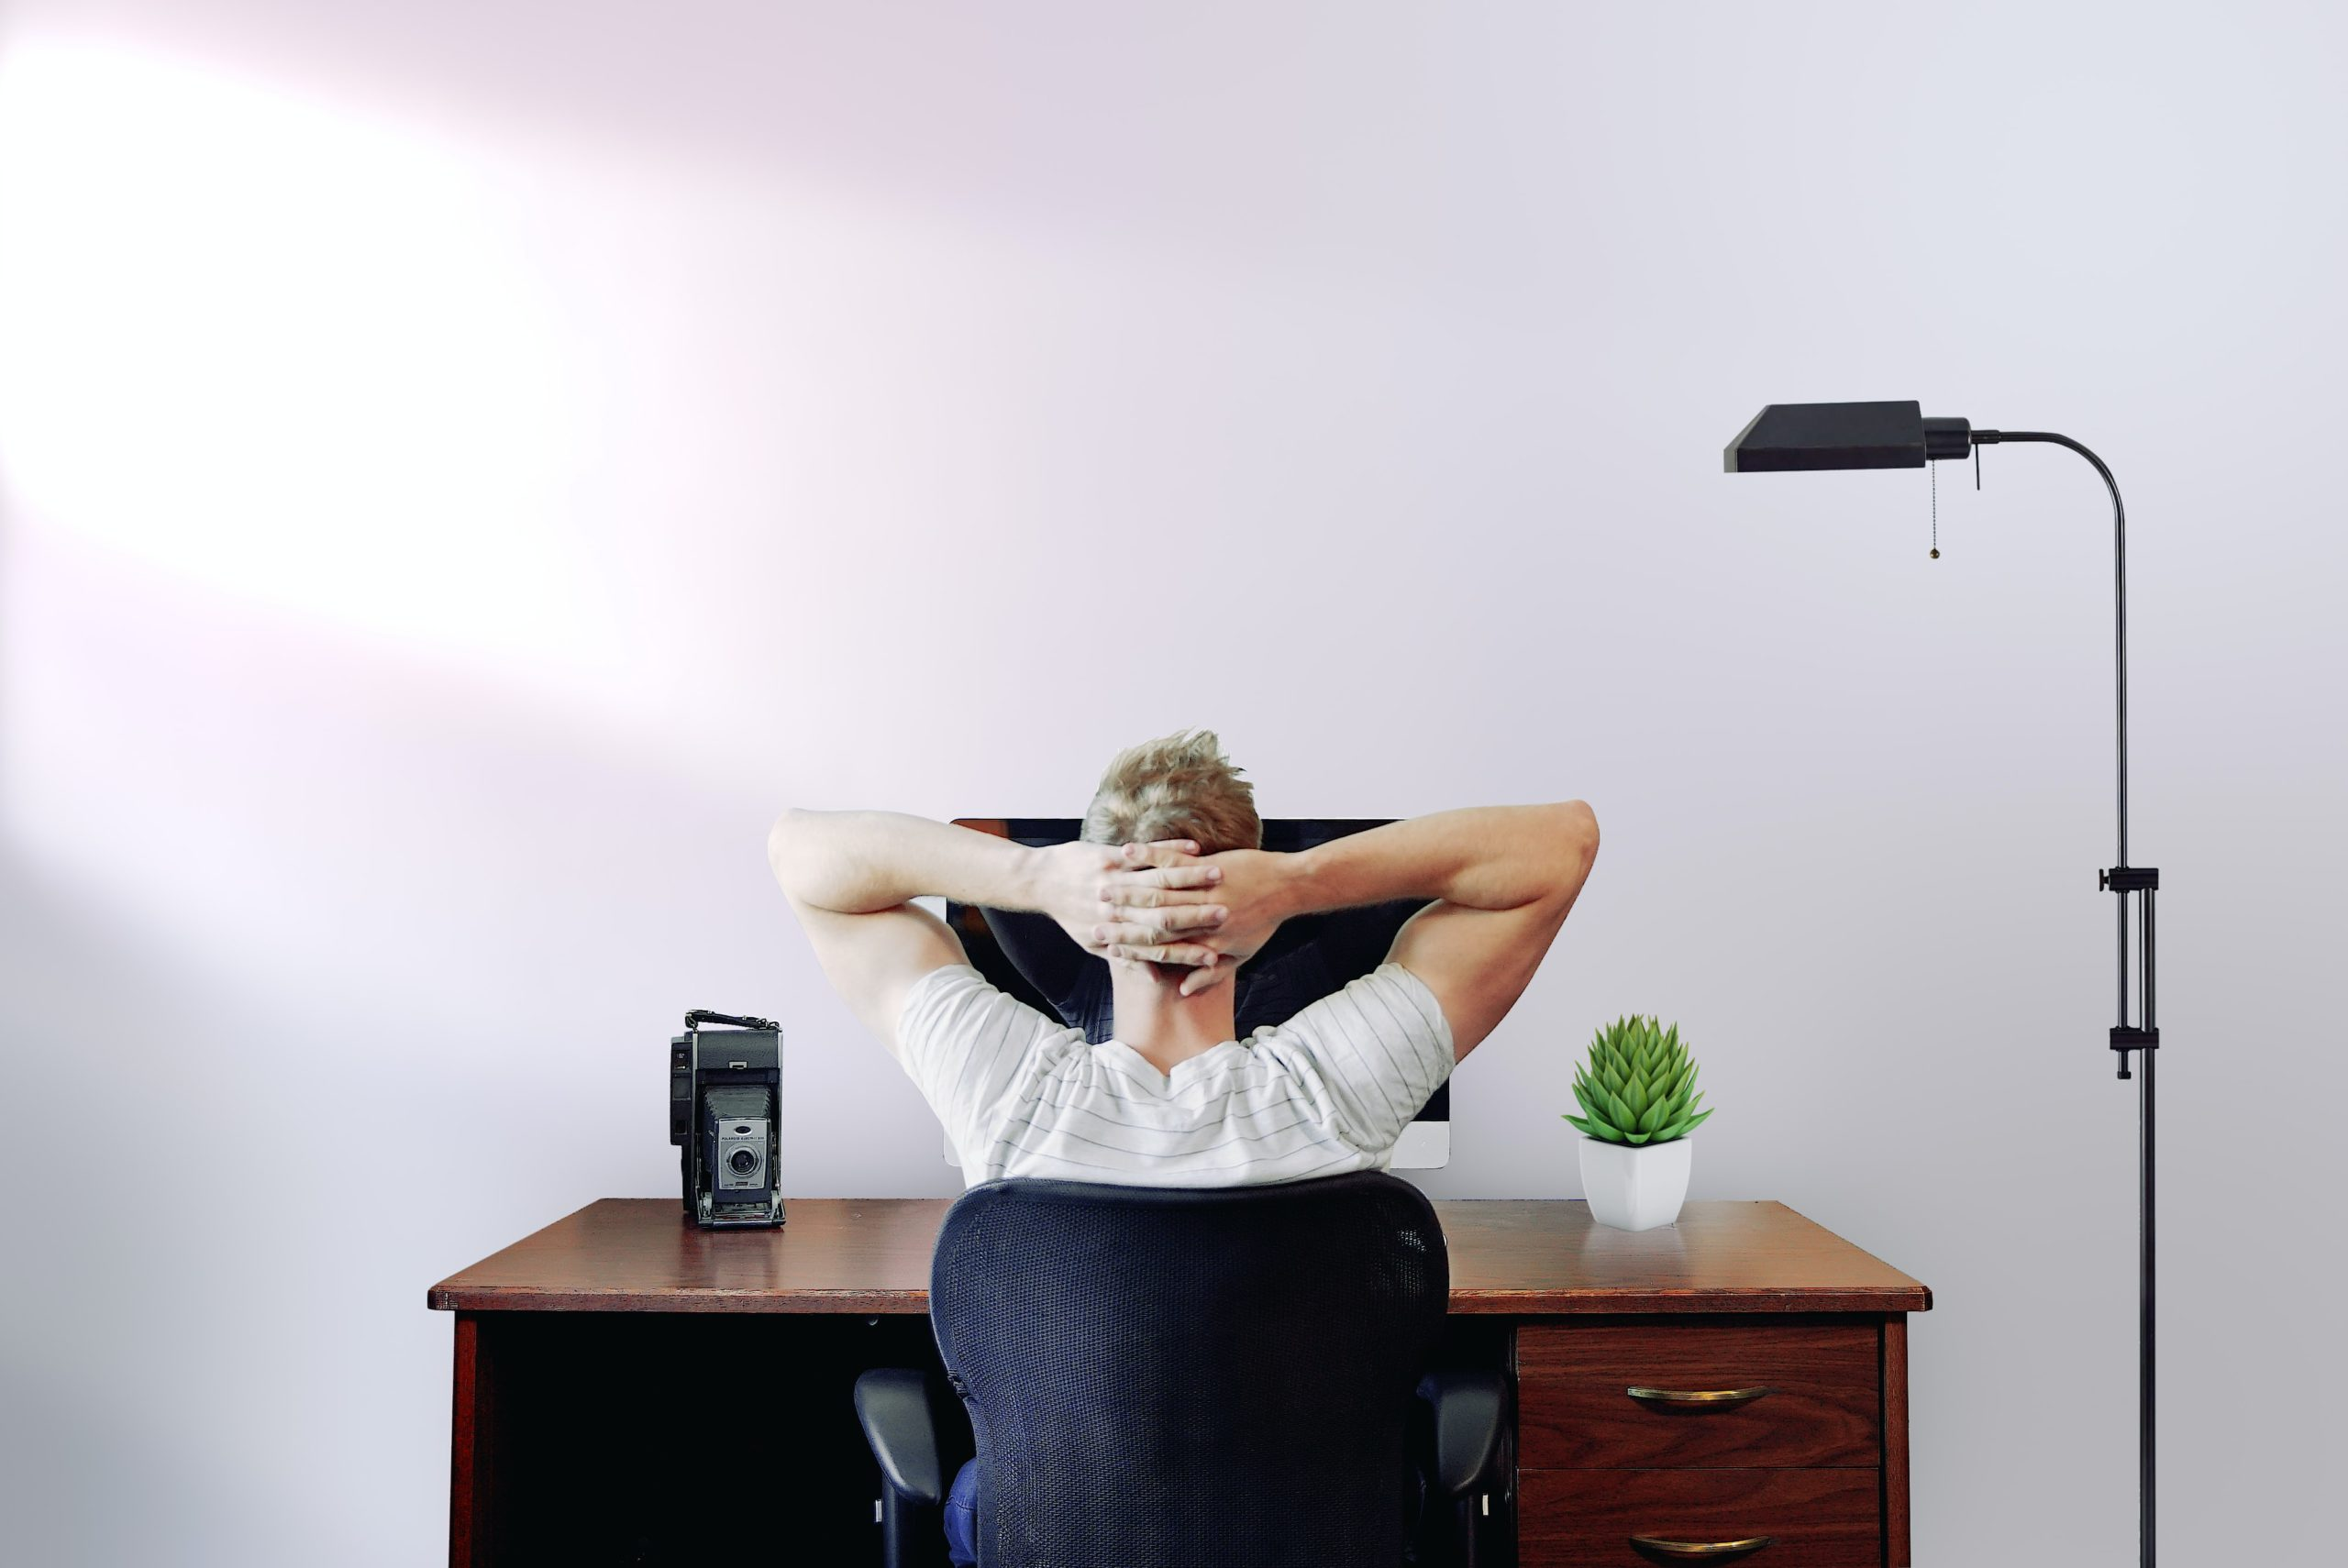 seated freelancer with hands on the back of his head contemplating the use of meta keywords in front of his desktop computer